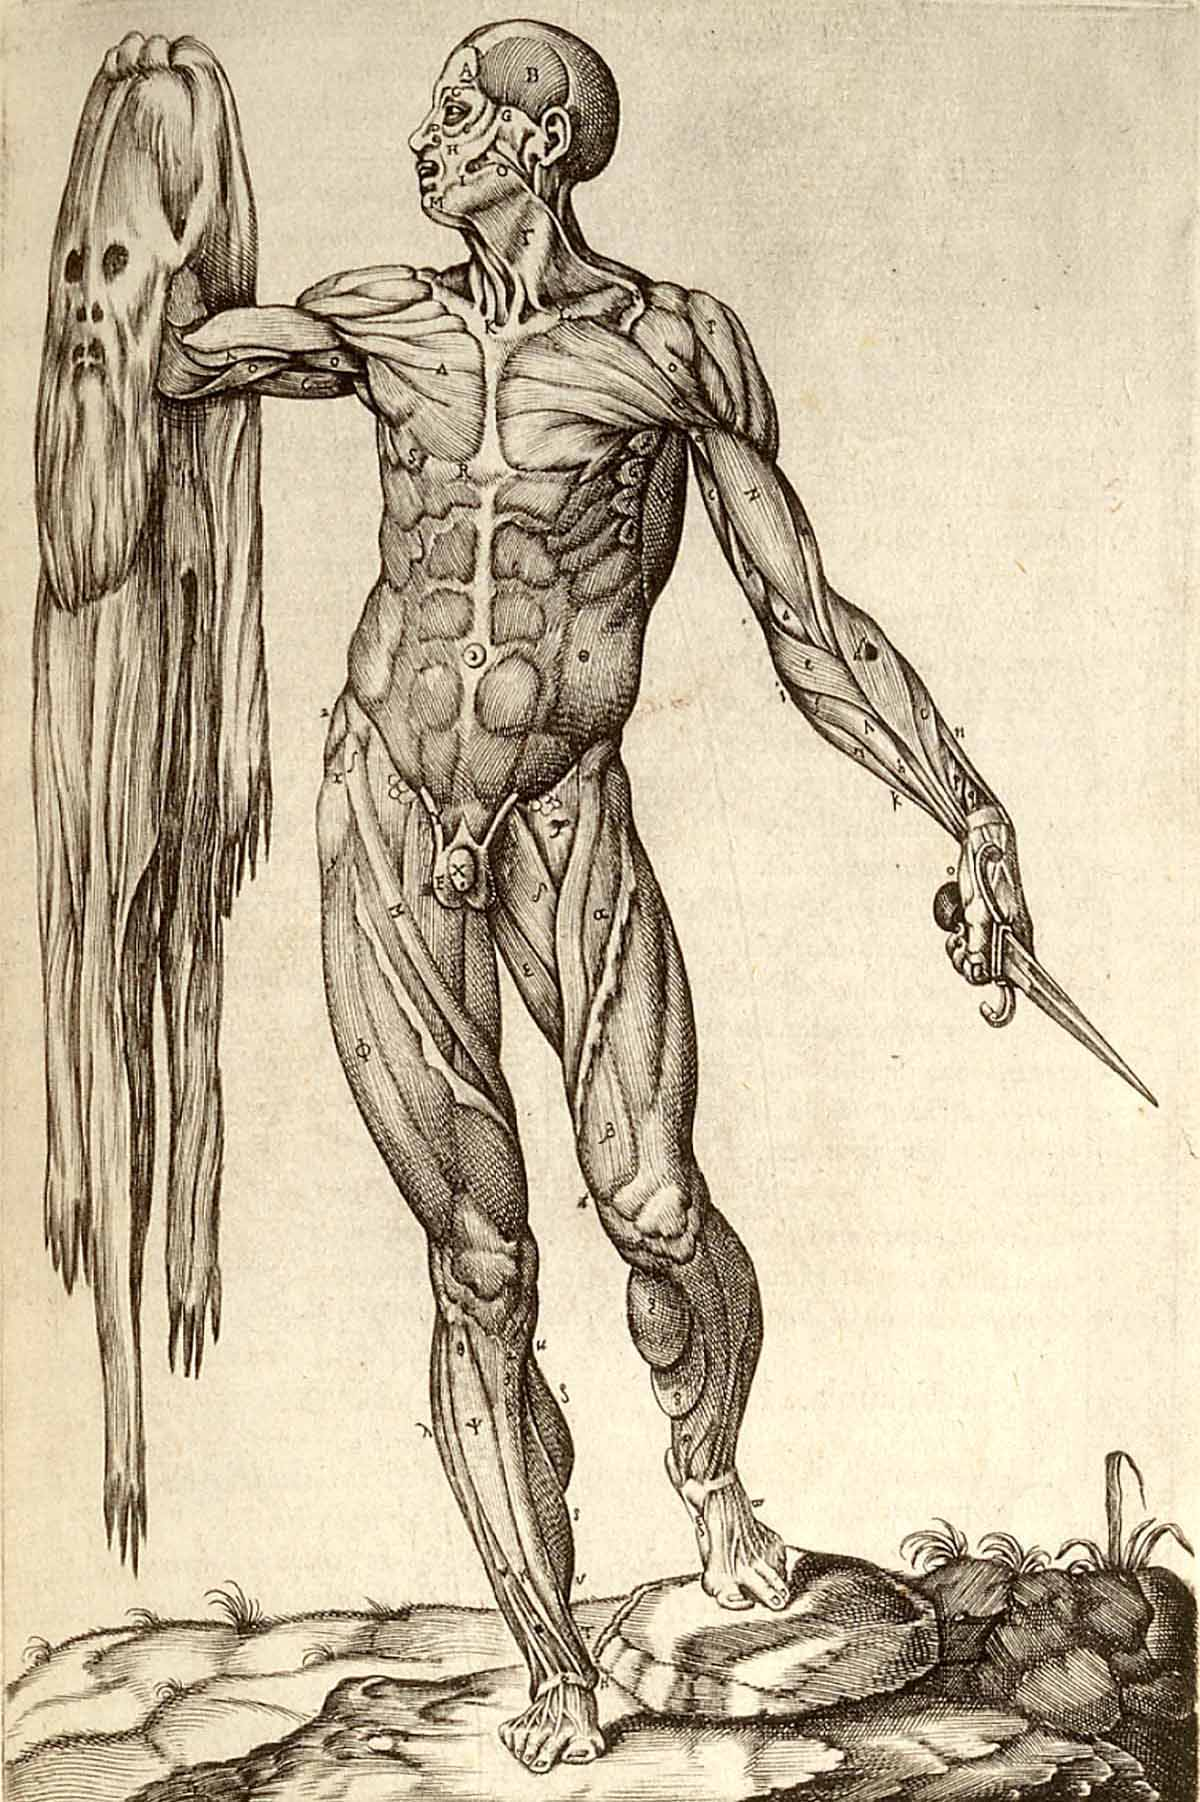 Renaissance Anatomy Drawing Of Flayed Cadaver Holding Own Skin